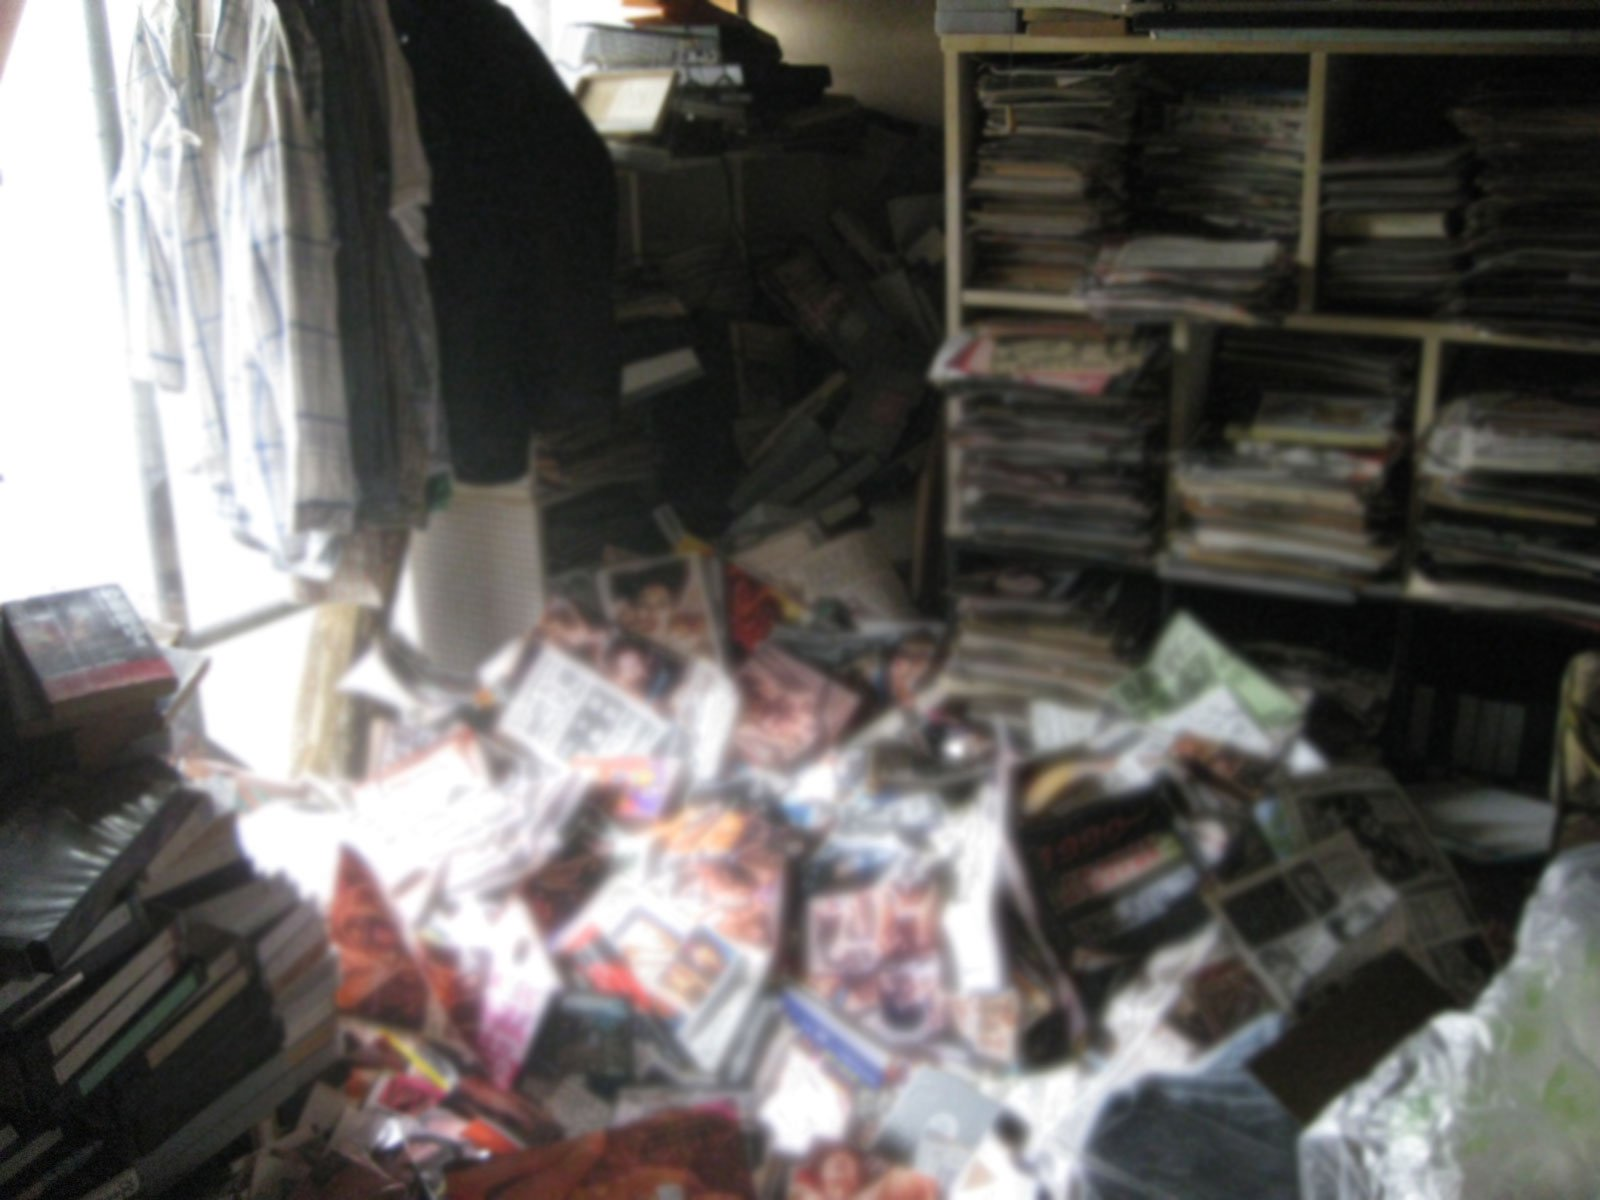 Pic shows: Scene where body was recovered from under a six-ton pile of erotic magazines. By Gabriel Zamfir The secrets of the lonely dead in Japan have been revealed by a man hired to clear out their homes of potentially embarrassing items. Mr. Takada who works with Mind - a company that cleans and clears out the homes of the deceased - says the numbers of people dying alone in Japan is on the rise. The Japanese even have a word for it - kodokushi - and many are not discovered until long after they passed away. Takada recalled one lonely death in Kanagawa Prefecture of a 50-year-old man who left behind an incredible SIX TONS of pornographic magazines in his apartment. He collapsed in his home from a heart attack and was found partially buried beneath the Everest of XXX magazines which Takada had to discretely dispose of. He was not found for some time but his leaking body fluids were absorbed by the magazines. This is often not the case and people in apartments below those where someone has died often notice noxious fluid from the dead seeping into their homes. (ends)